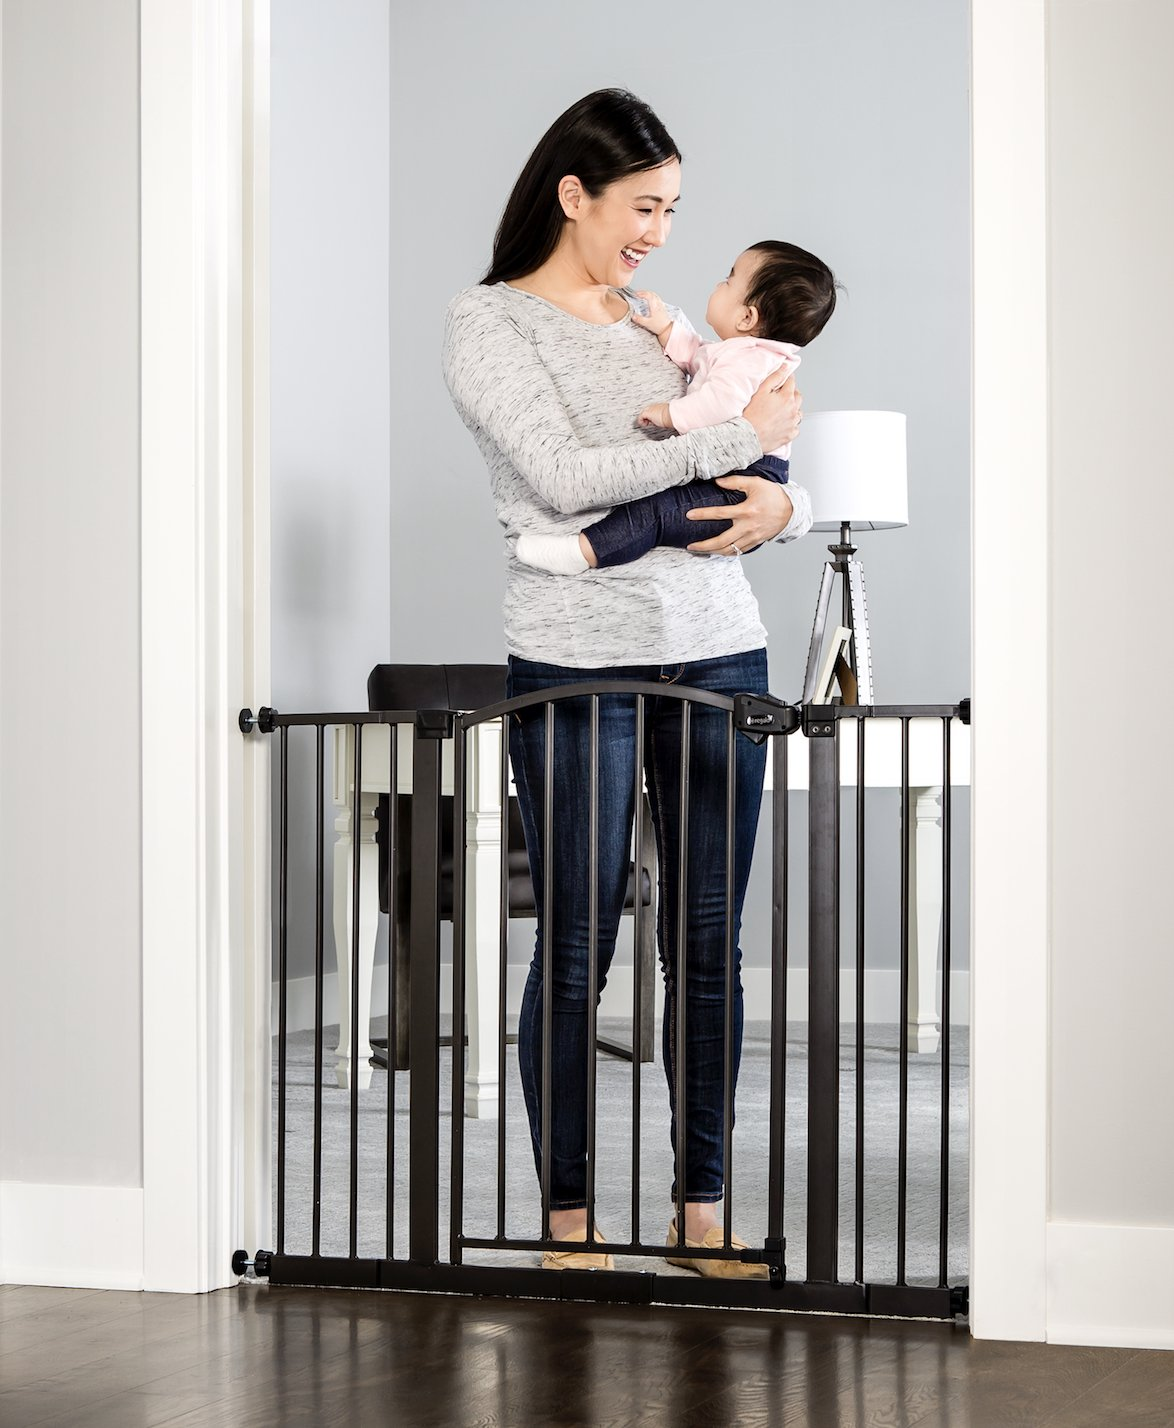 Regalo Easy Step Arched Décor Walk Thru Baby Gate, Includes 4-Inch Extension Kit, 4 Pack Pressure Mount Kit and 4 Pack Wall Mount Kit, Bronze by Regalo